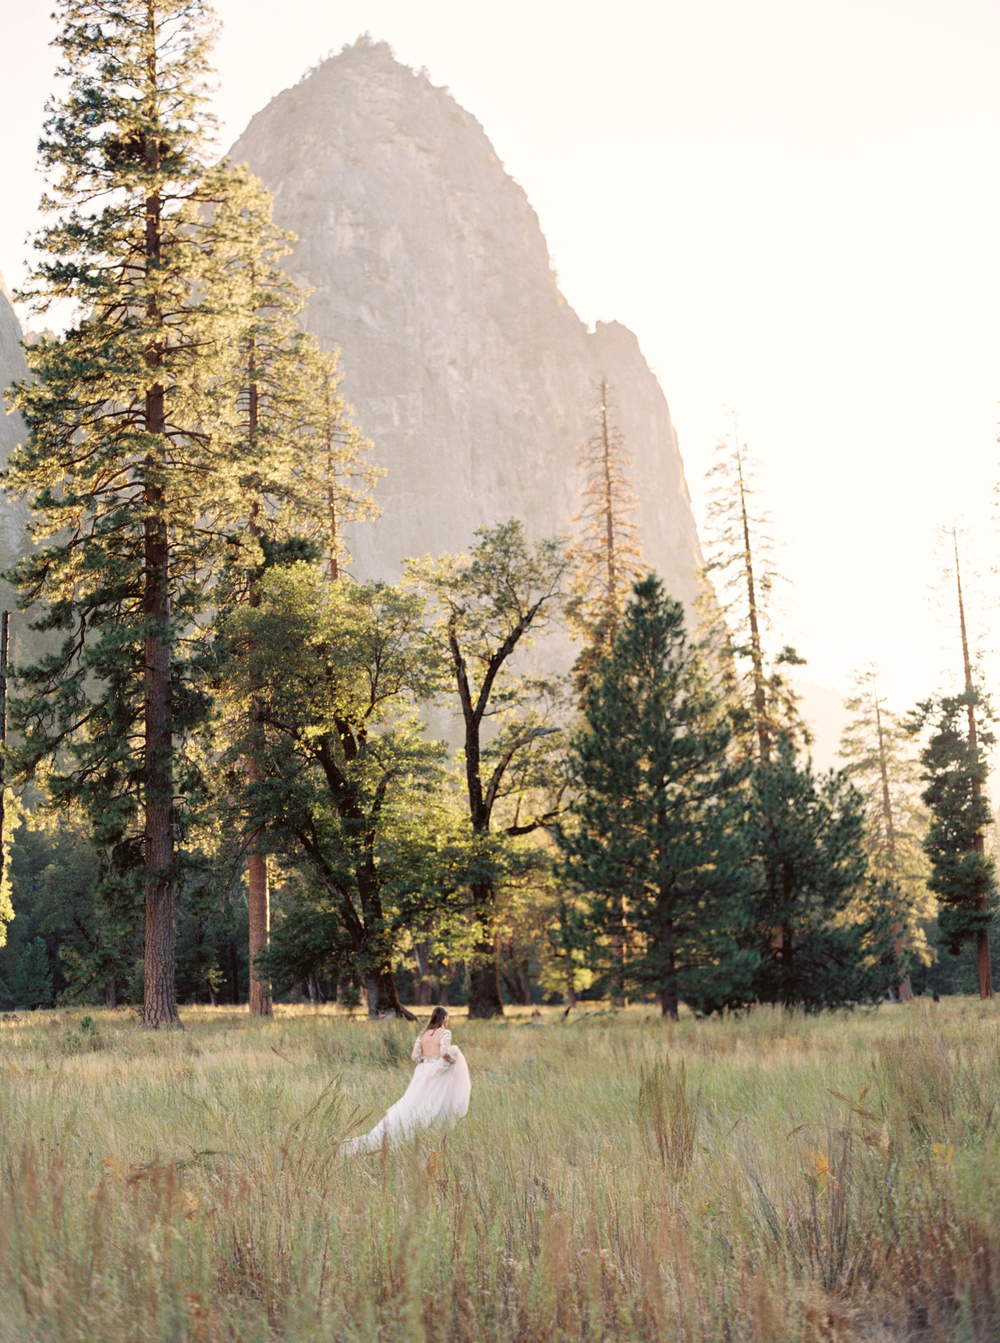 contax645_fuji400_yosemite_cassidy_carson_ashley_paige_kelly_lenard_photovisionprints.jpg